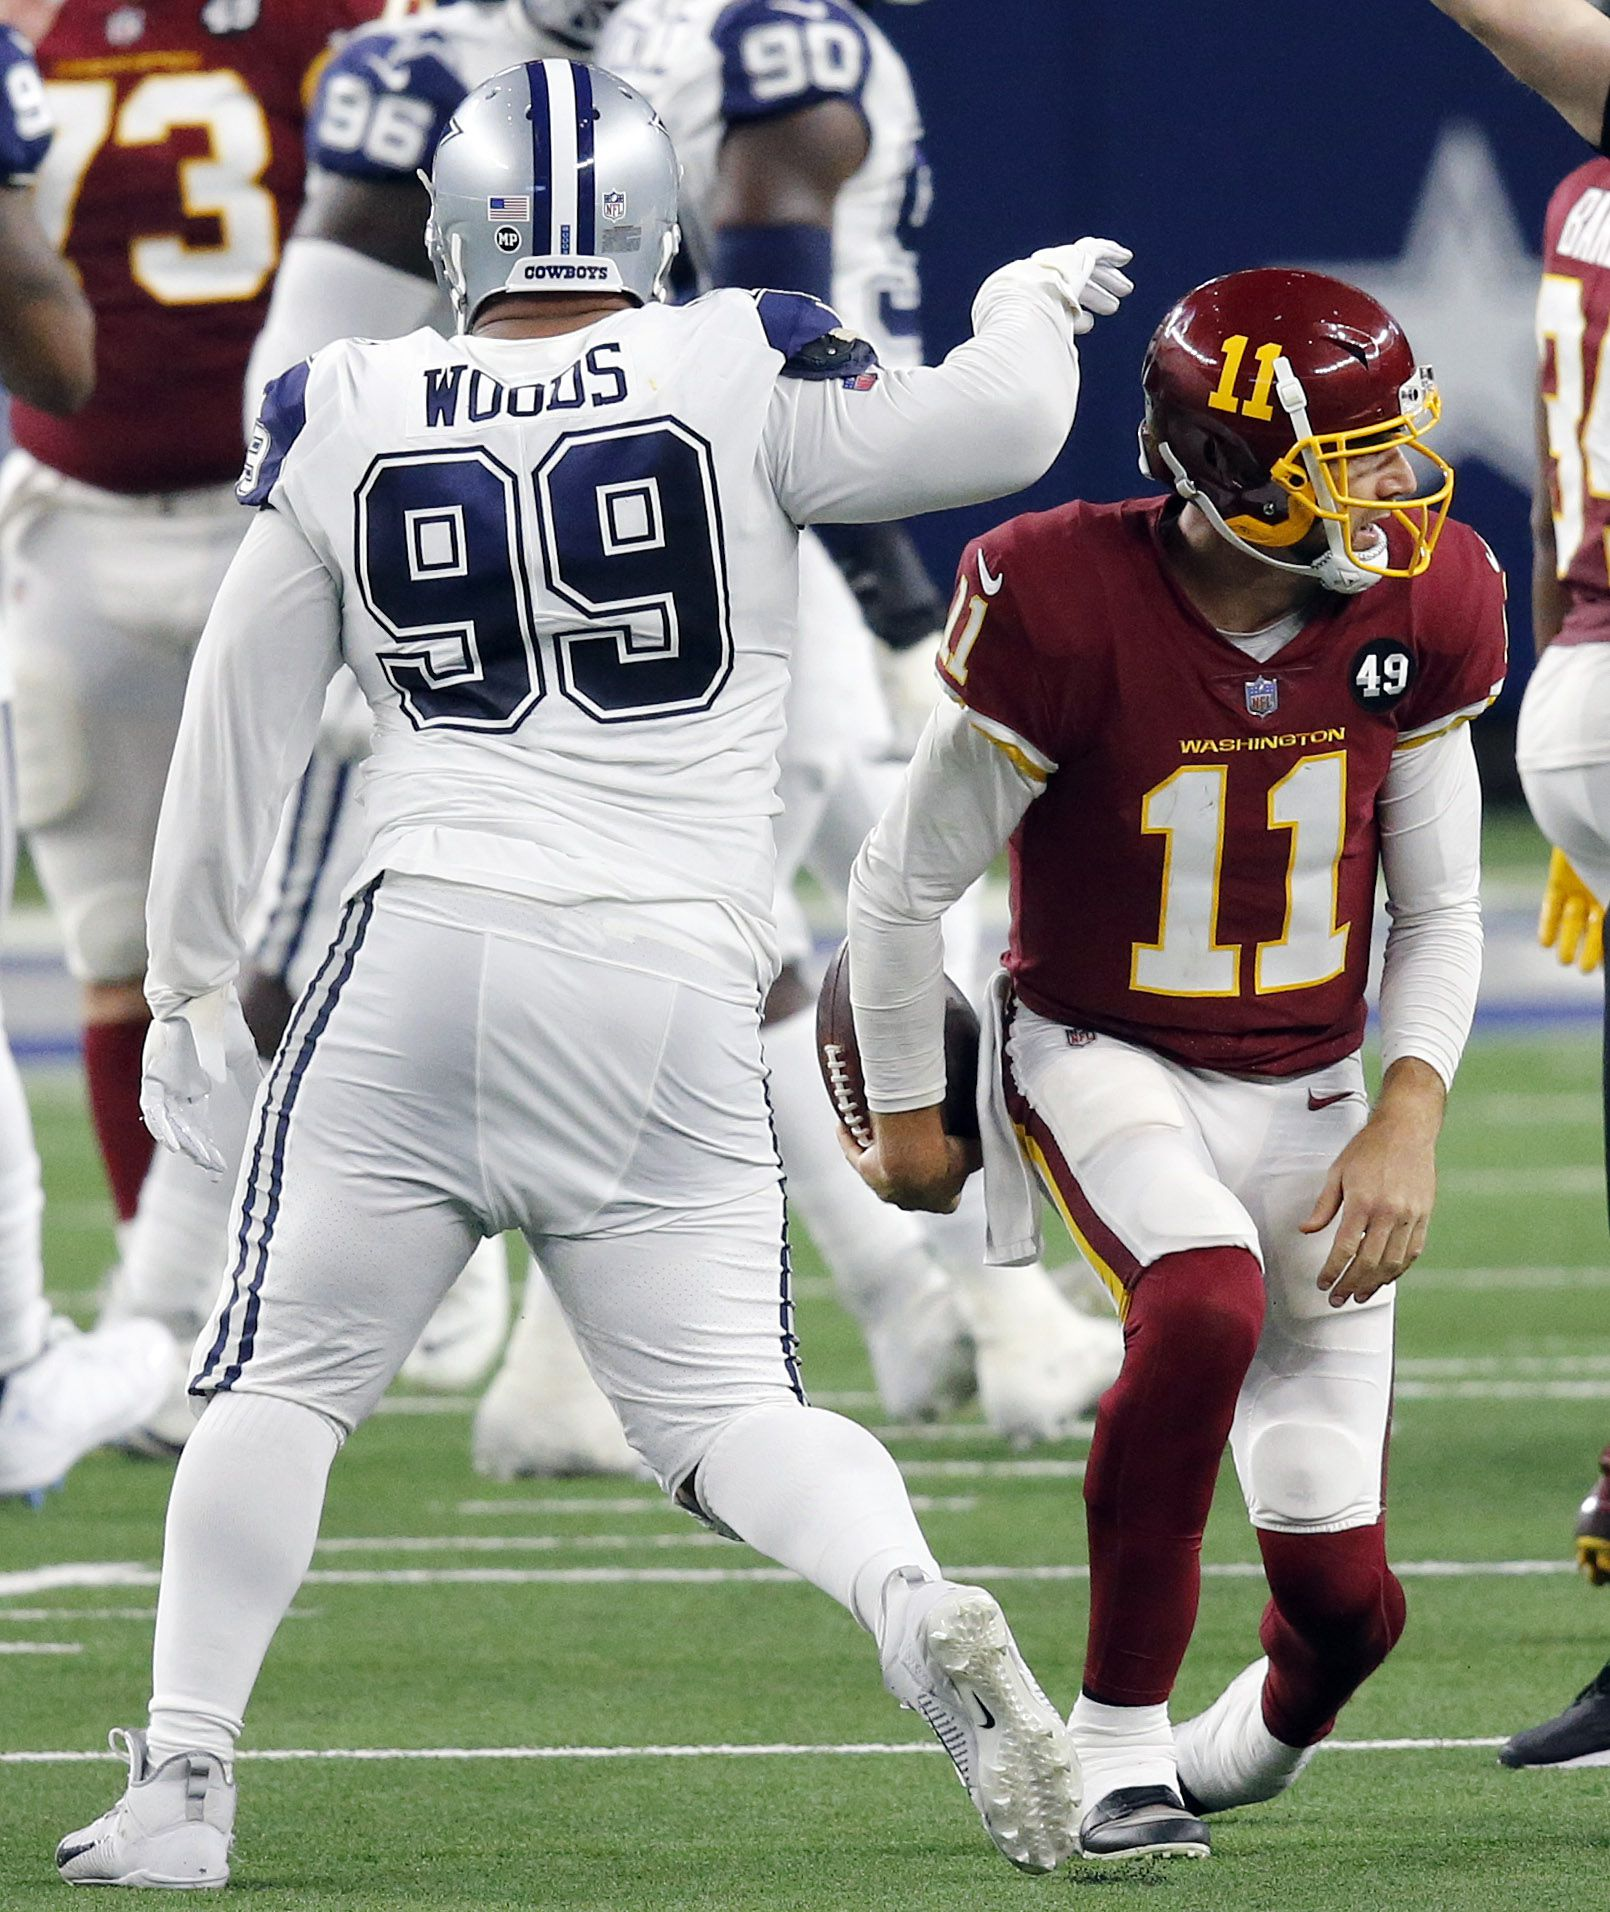 Dallas Cowboys defensive tackle Antwaun Woods (99) slaps Washington Football Team quarterback Alex Smith (11) on the head after forcing a sack in the third quarter at AT&T Stadium in Arlington, Thursday, November 26, 2020. (Tom Fox/The Dallas Morning News)